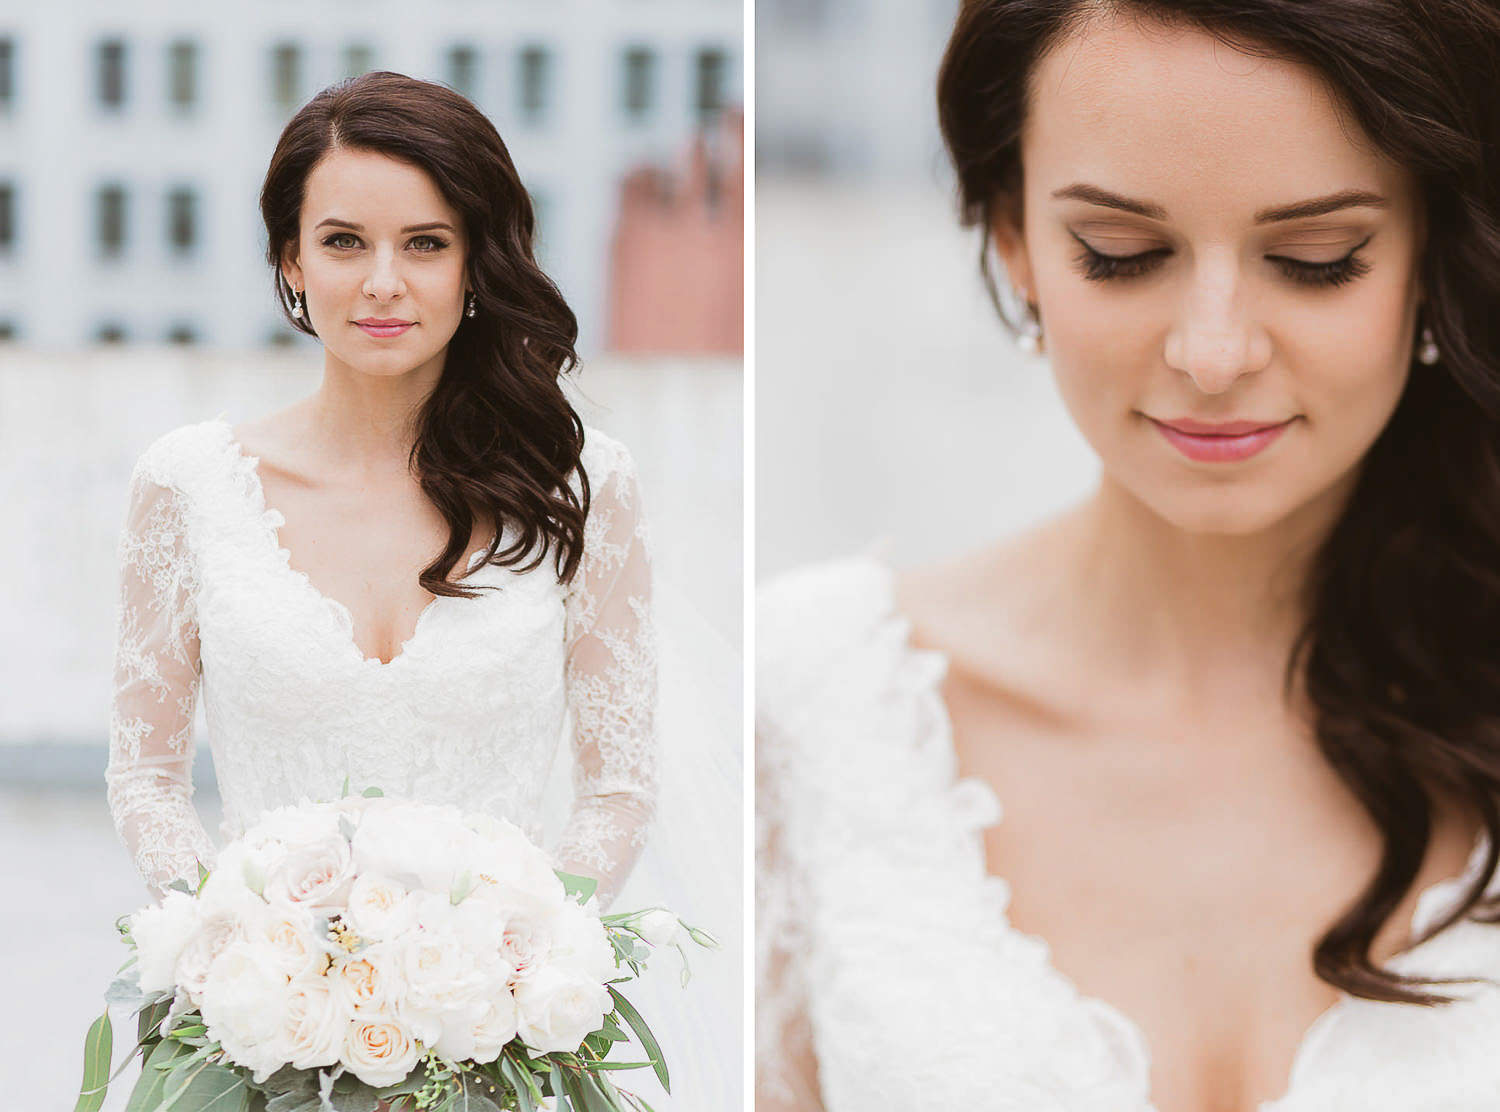 Chic stylish wedding in downtown Vancouver. The bride is wearing a stunning lace Maggie Sottero gown   Photo: Camilla Anchisi